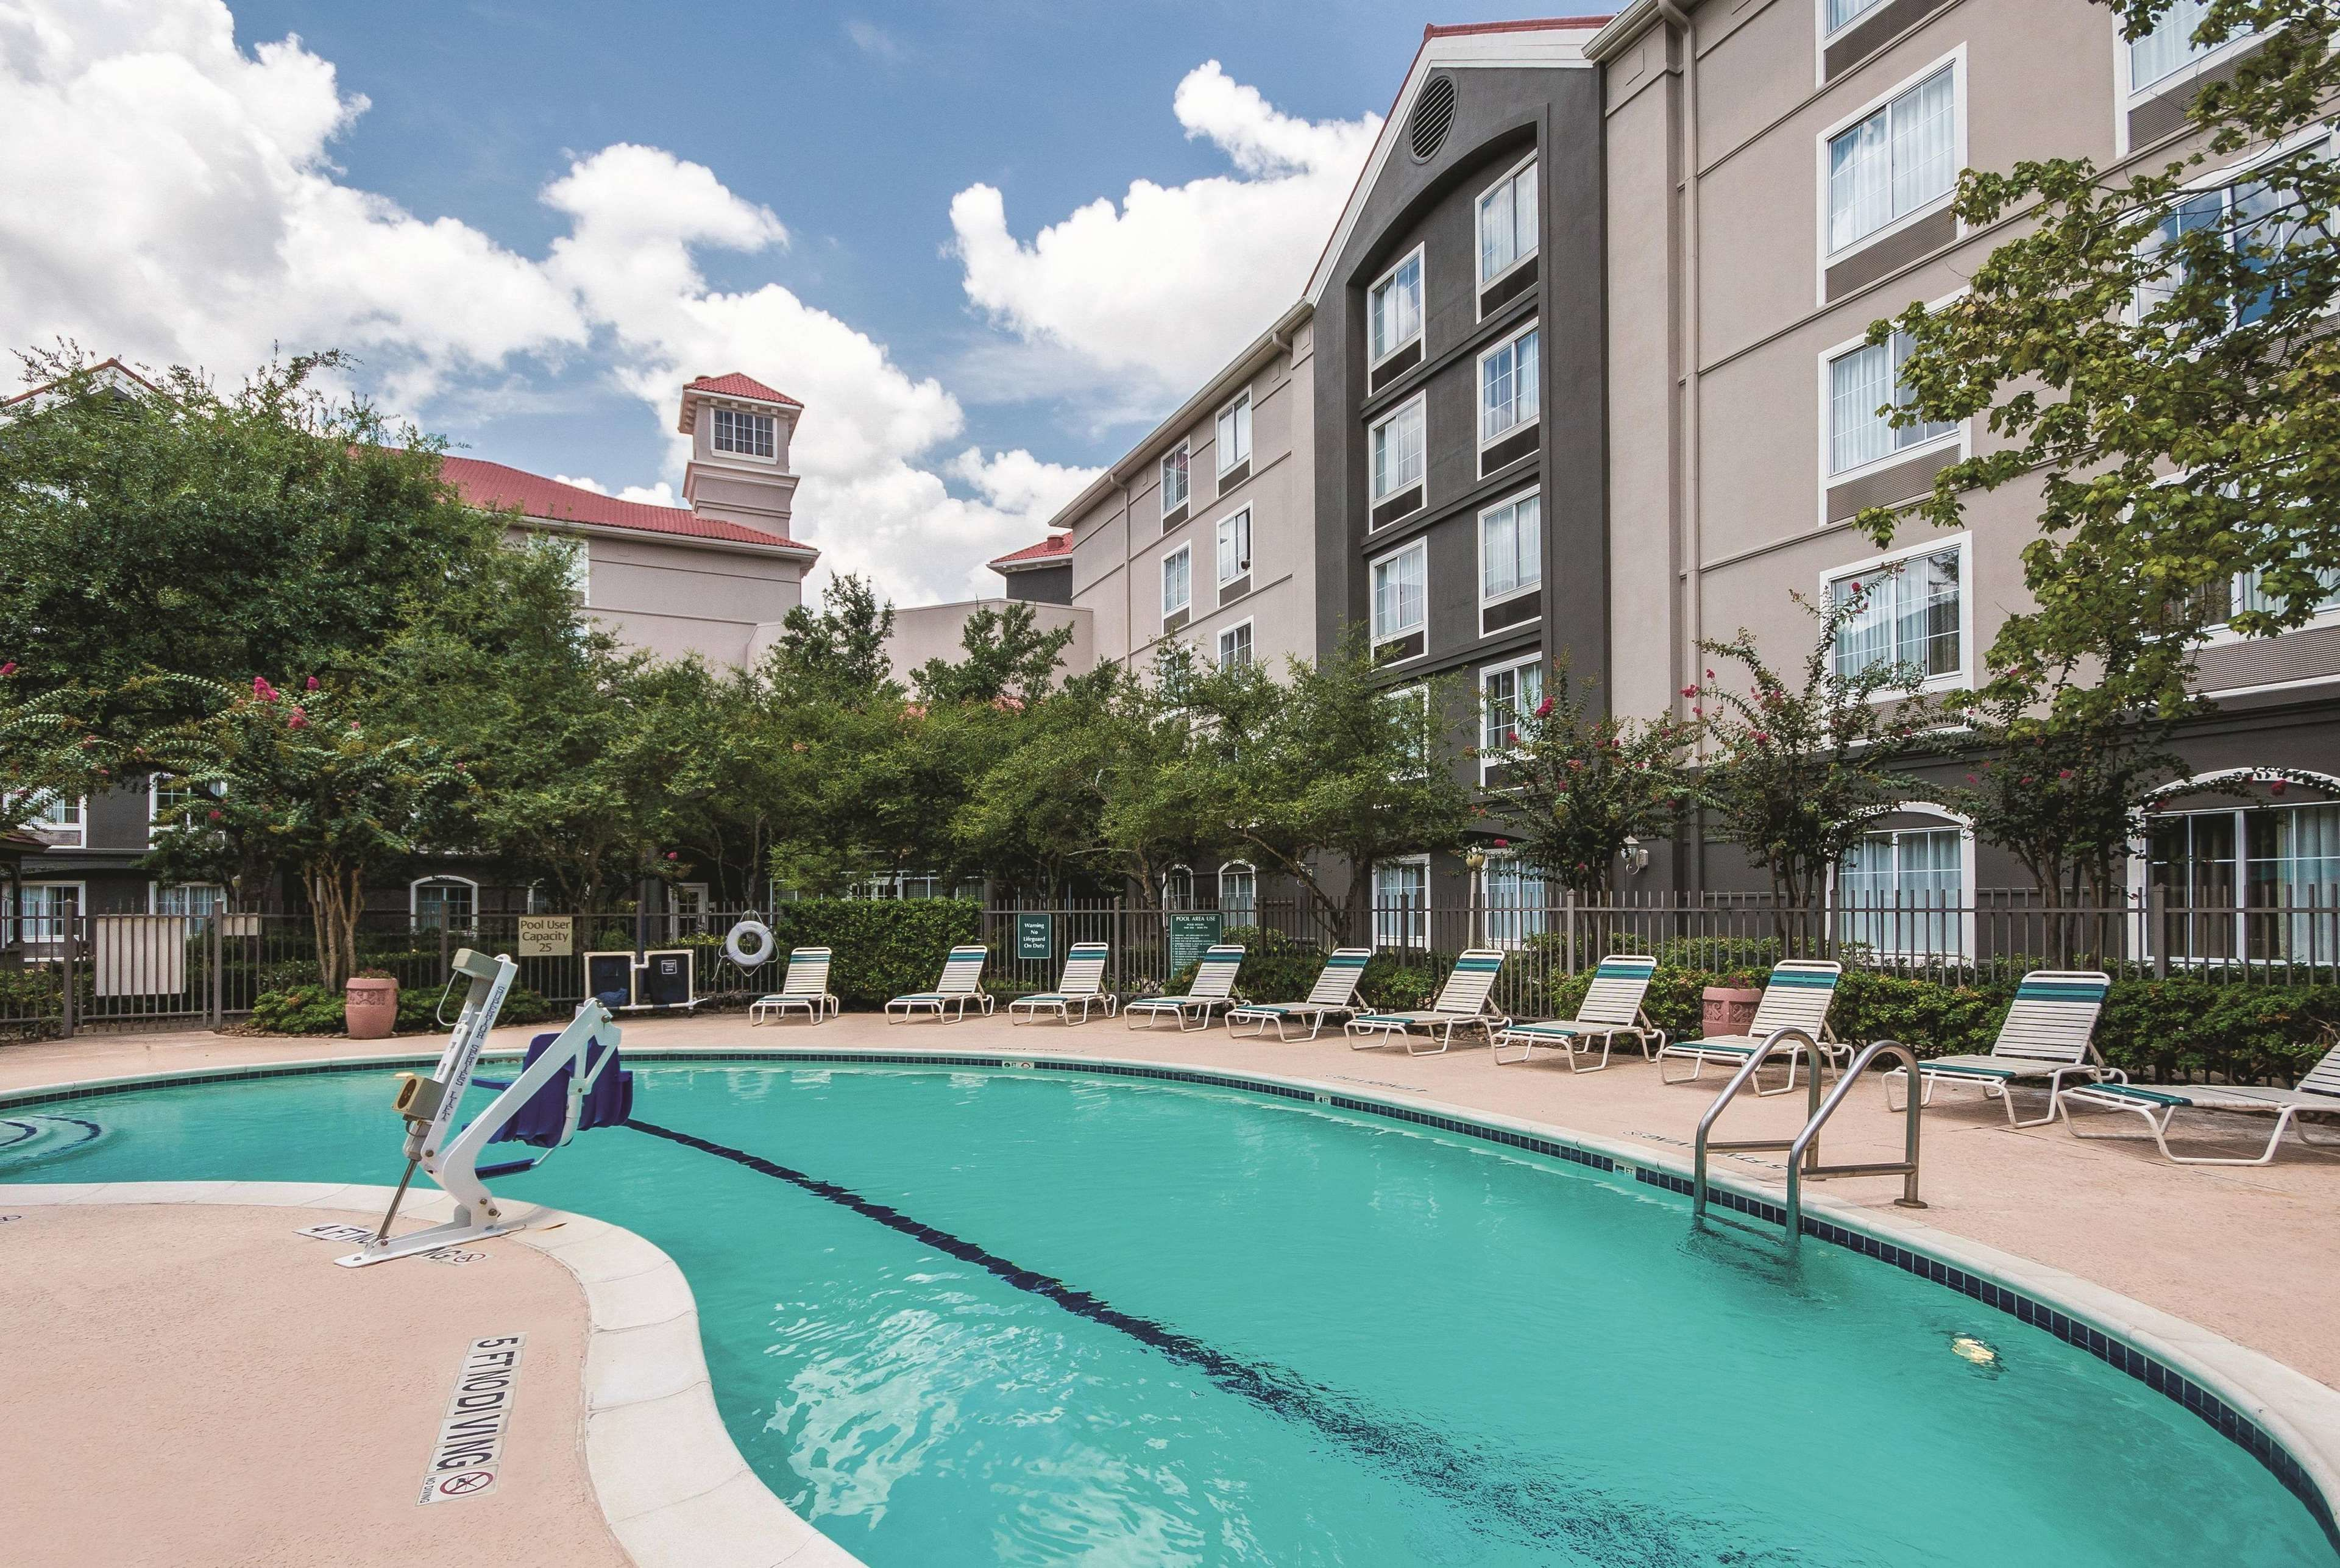 Courtesy of La Quinta Inn and Suites by Wyndham Houston Bush IAH South / Expedia